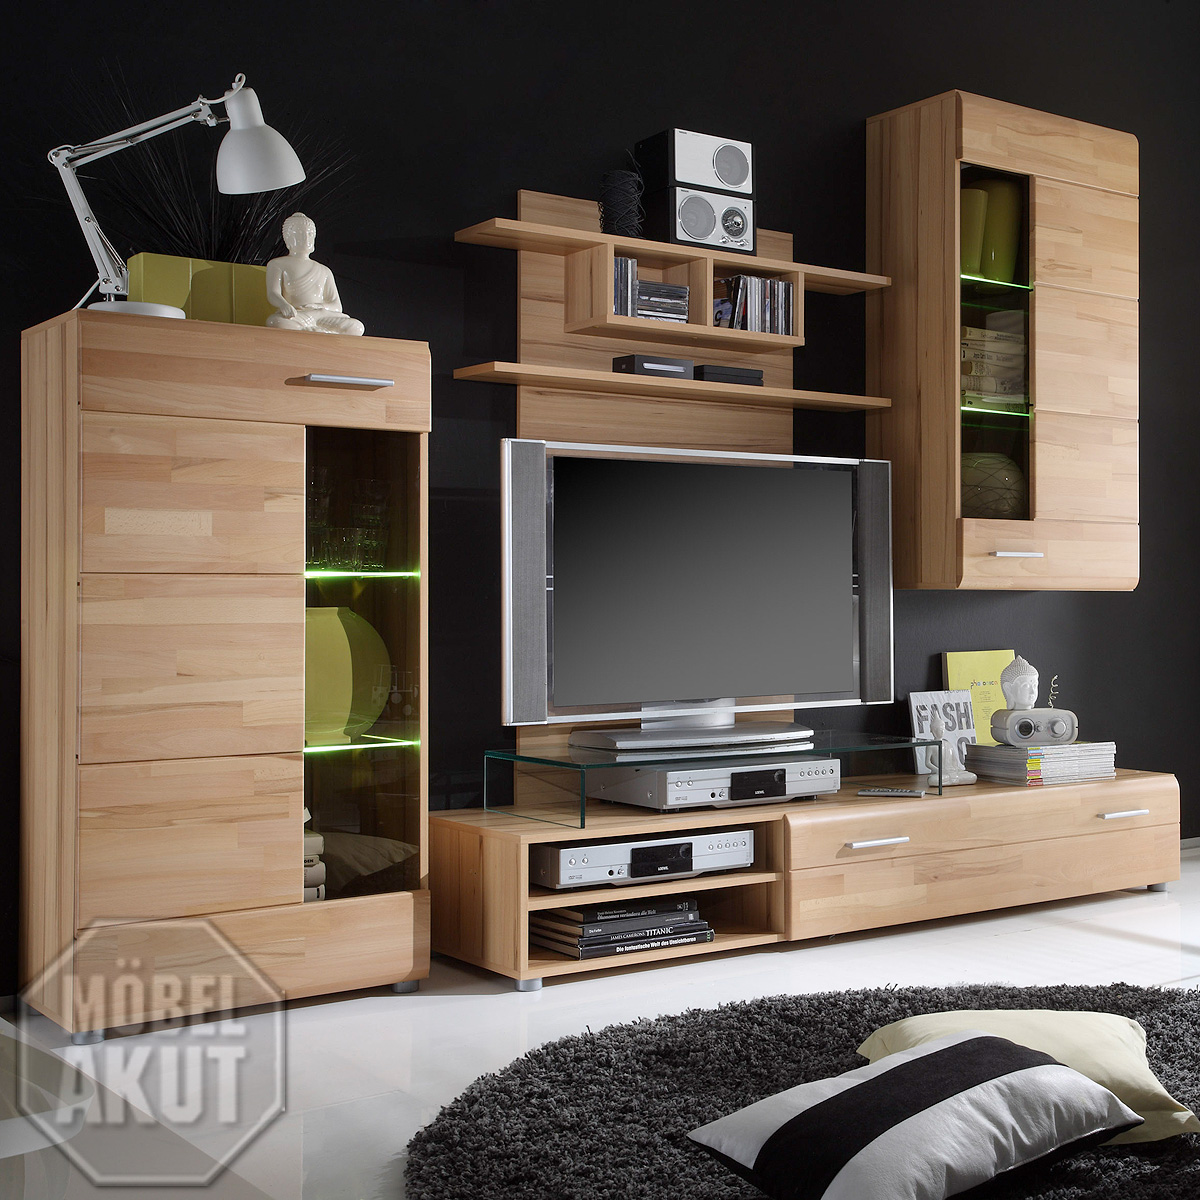 wohnwand nonda anbauwand wohnzimmer kernbuche teil. Black Bedroom Furniture Sets. Home Design Ideas